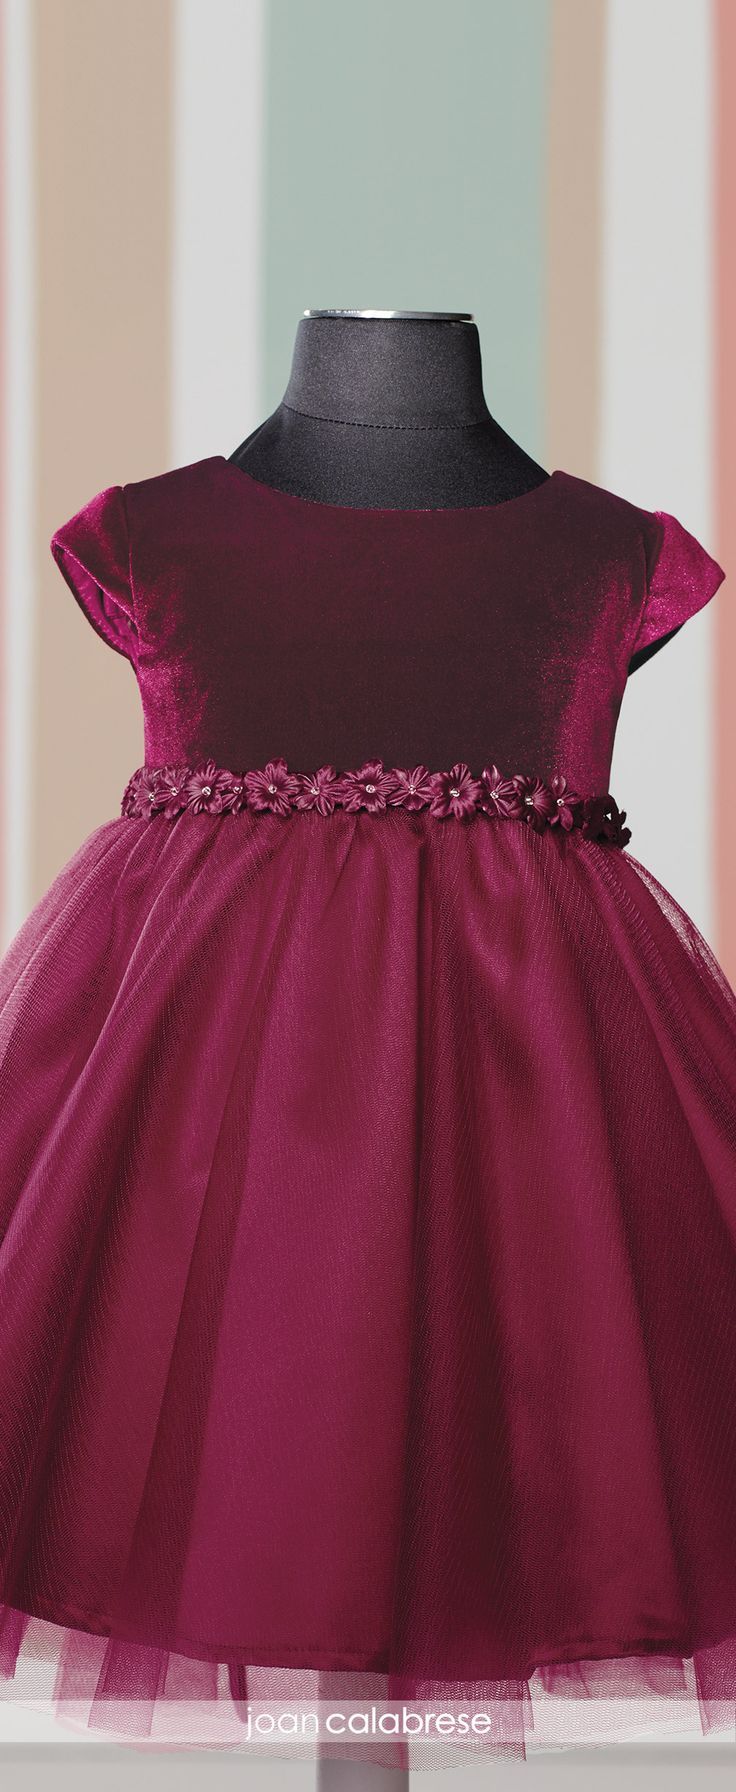 Joan Calabrese for Mon Cheri - Fall 2016 - Style No. 216327B - burgundy baby/toddler flower girl dress with velvet bodice and tulle skirt